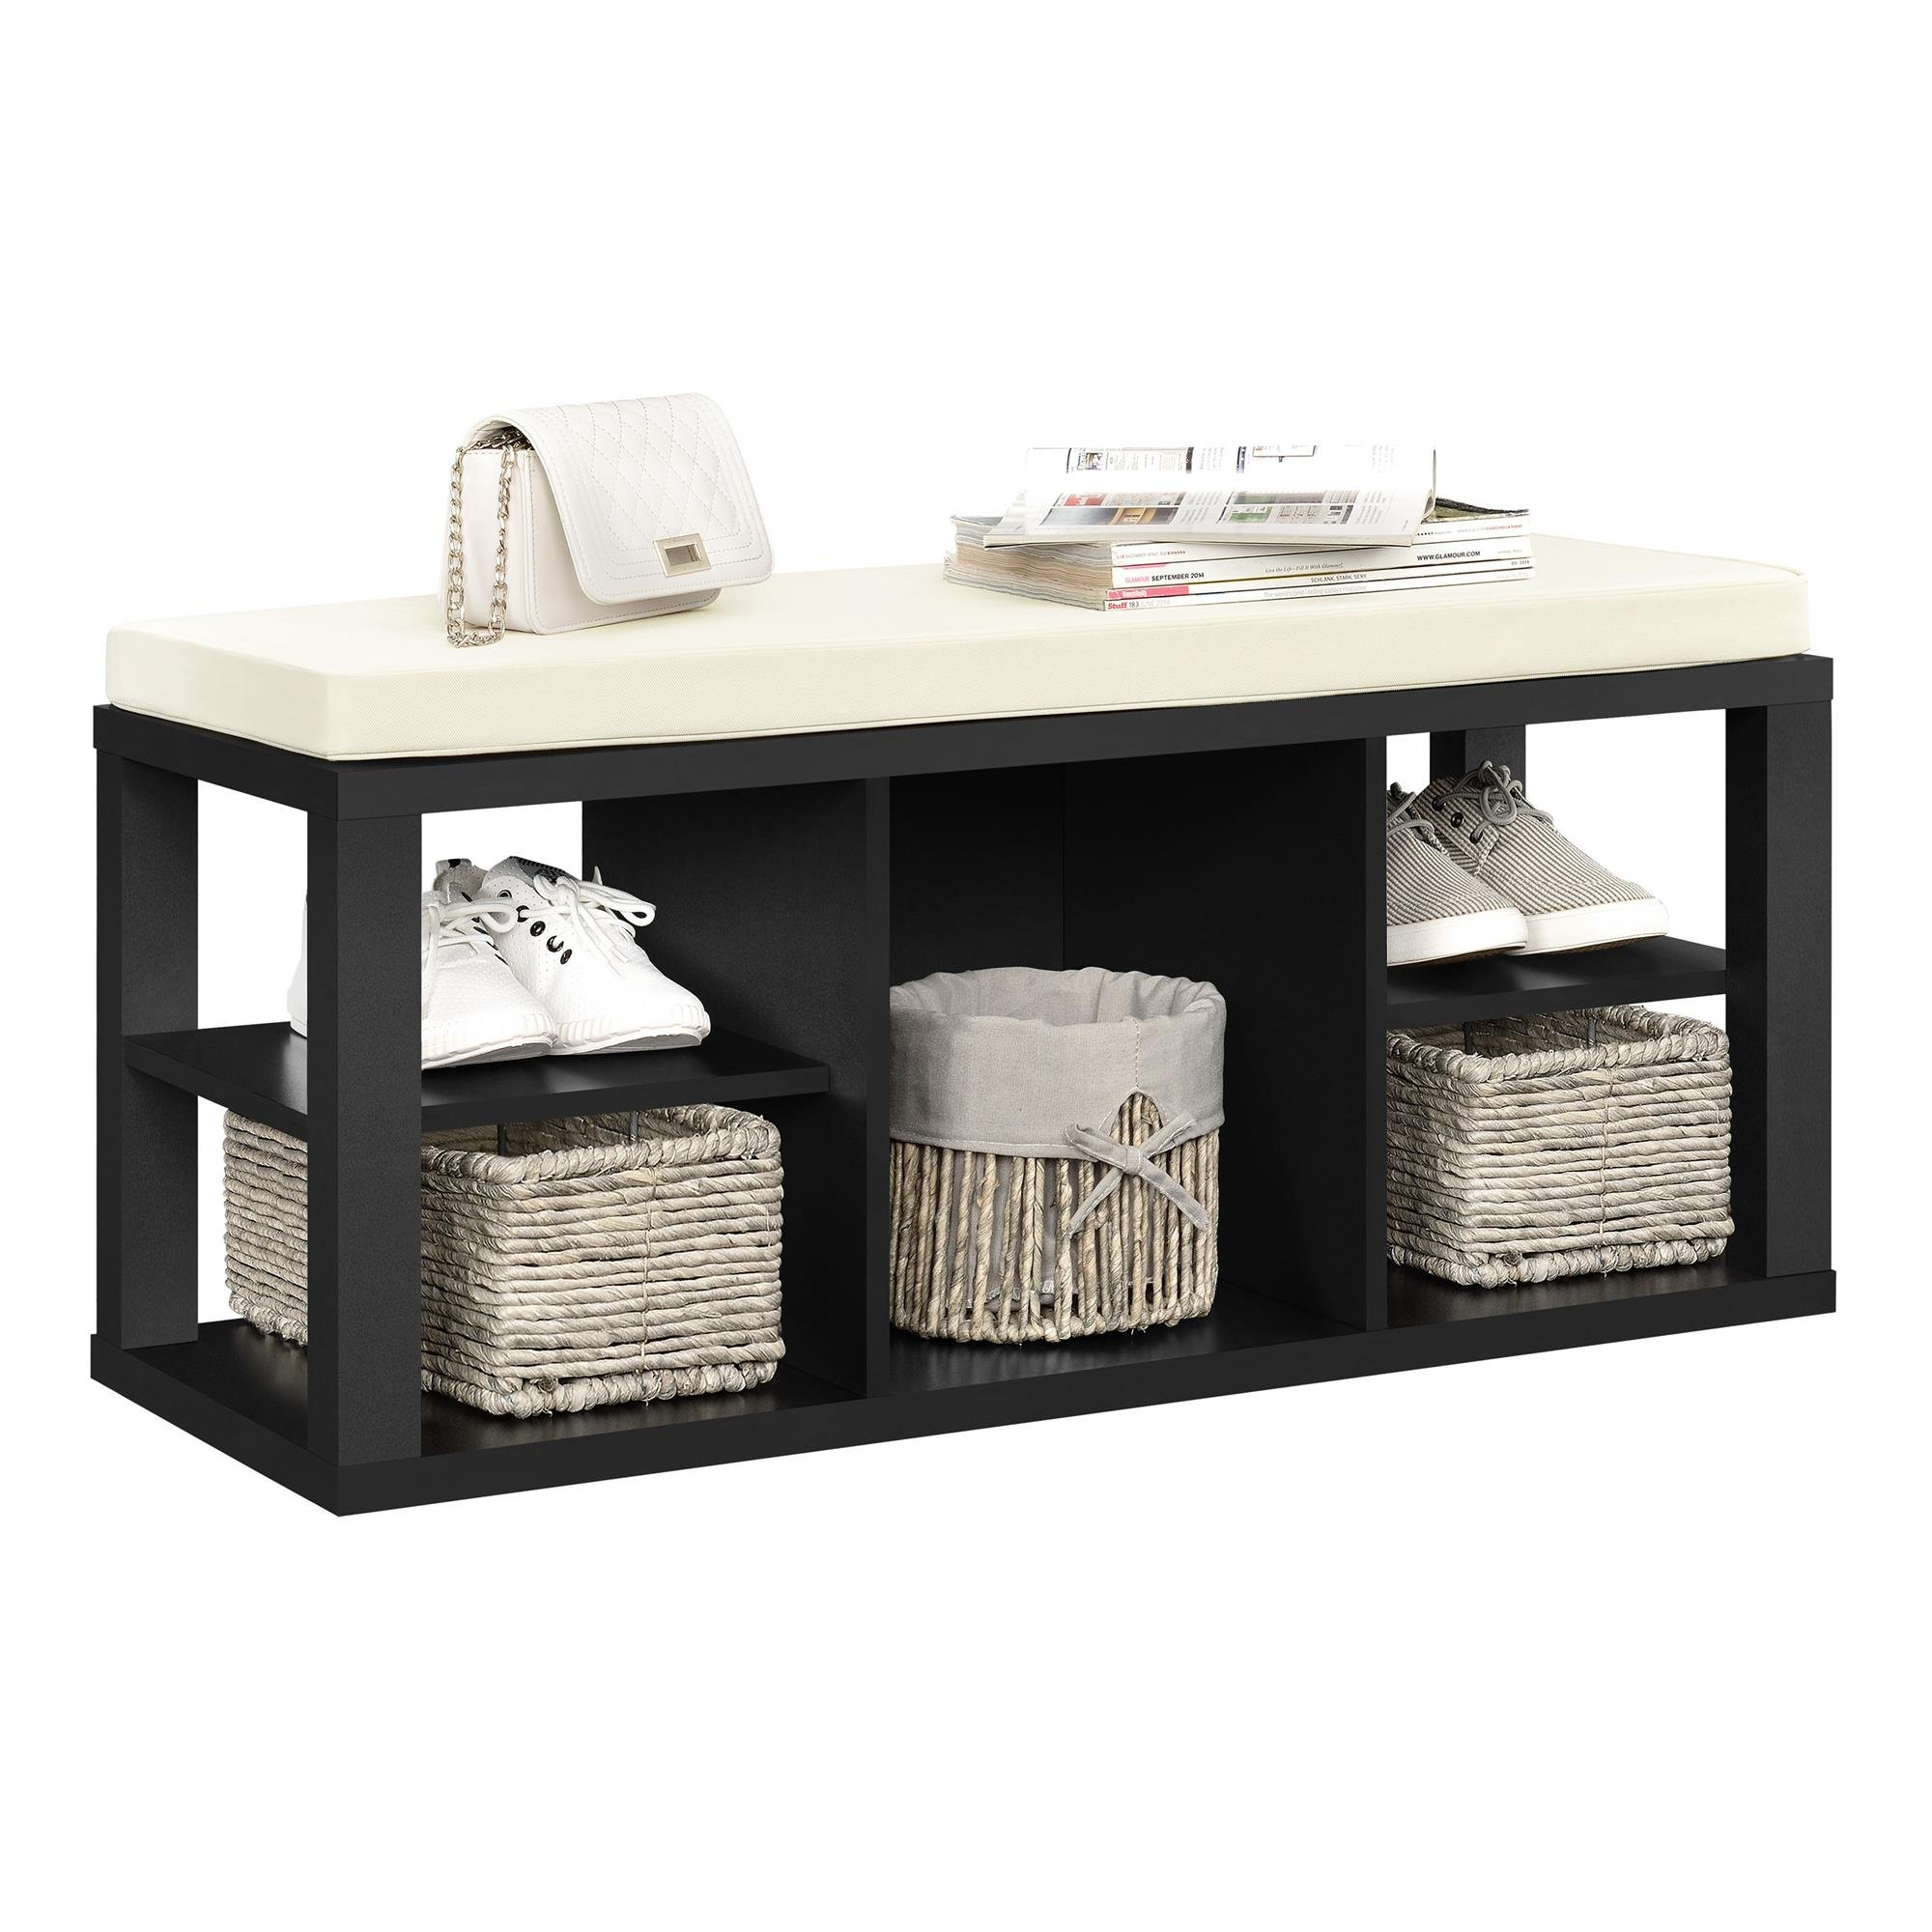 Ameriwood Home Parsons Storage Bench, Black by Ameriwood Home (Image #2)